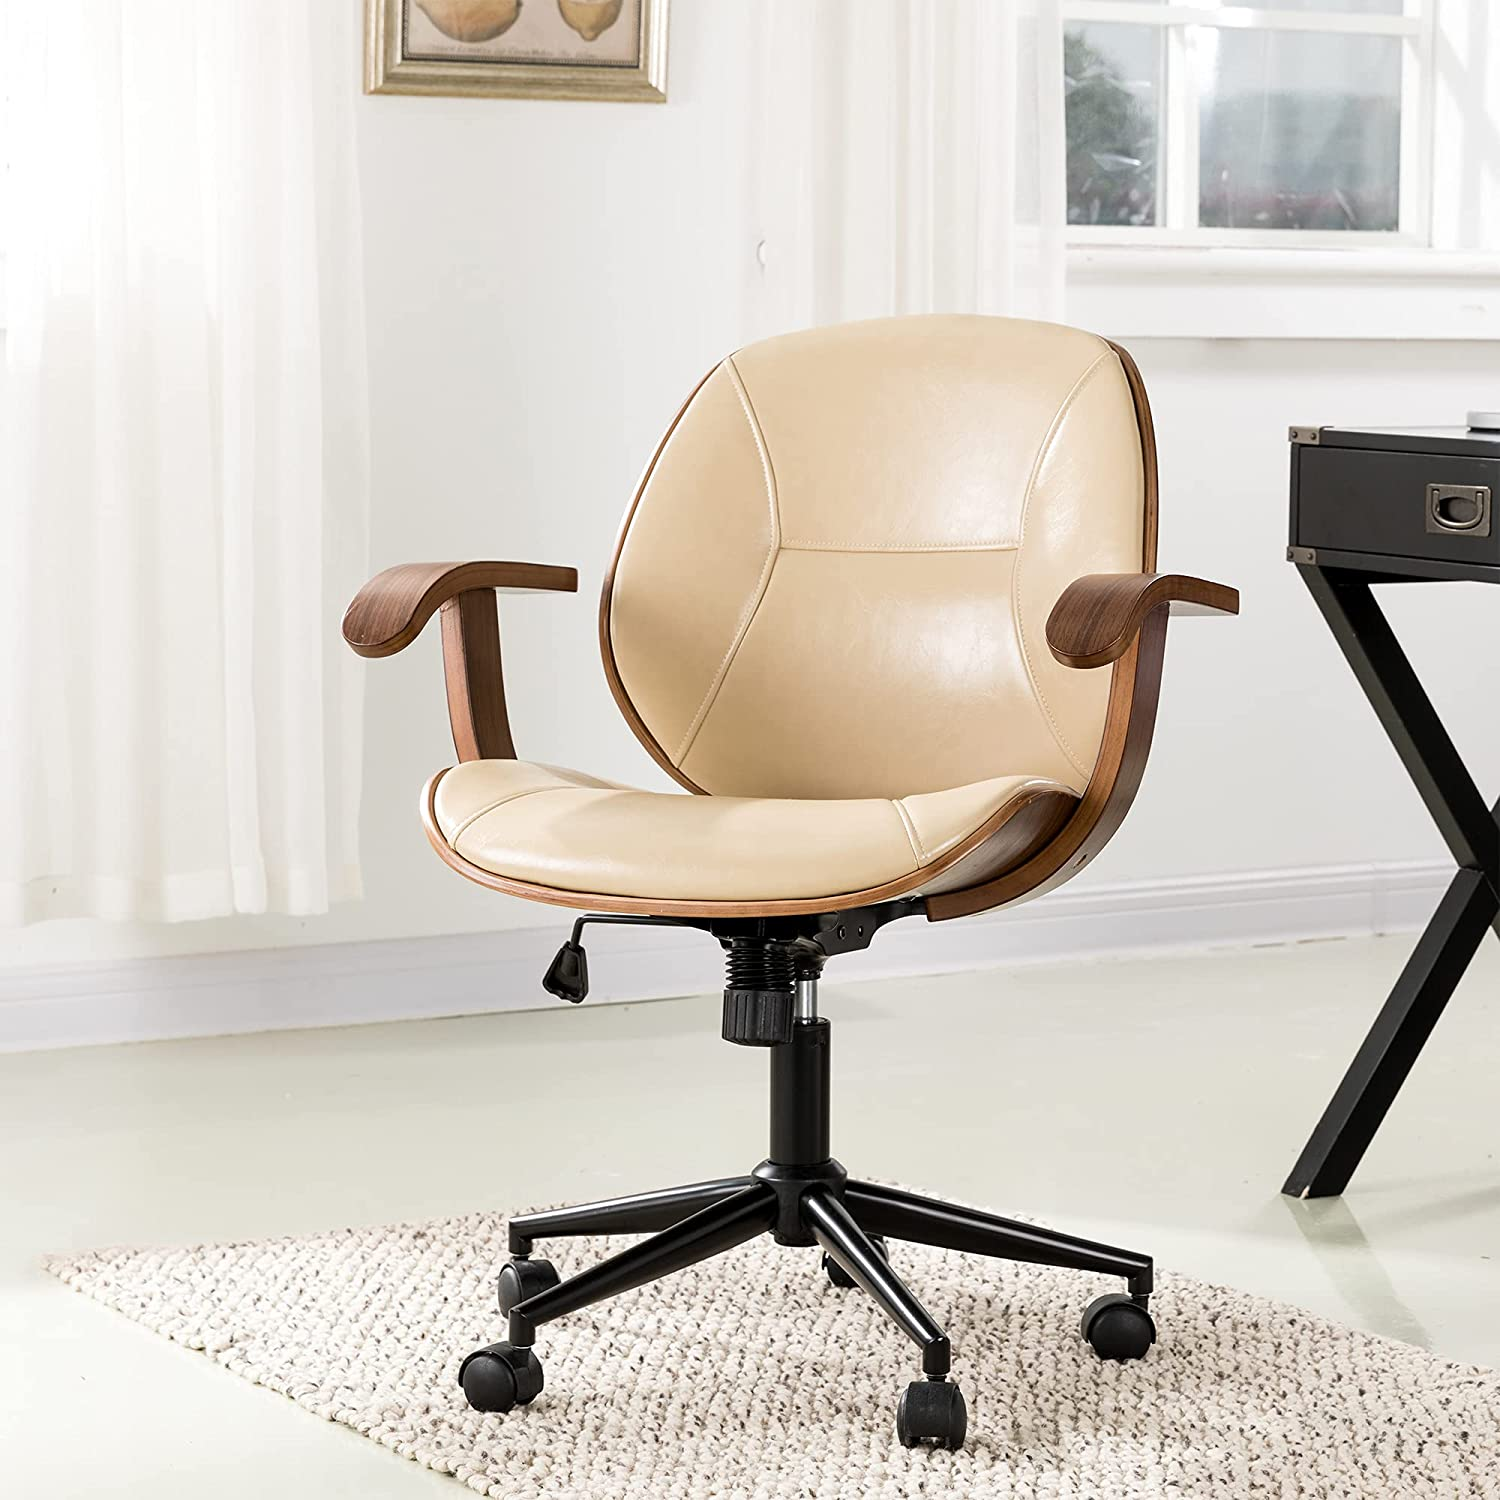 Glitzhome Adjustable Mid-Back Sacramento Mall Home Office Leathe PU Chair Thick Max 78% OFF